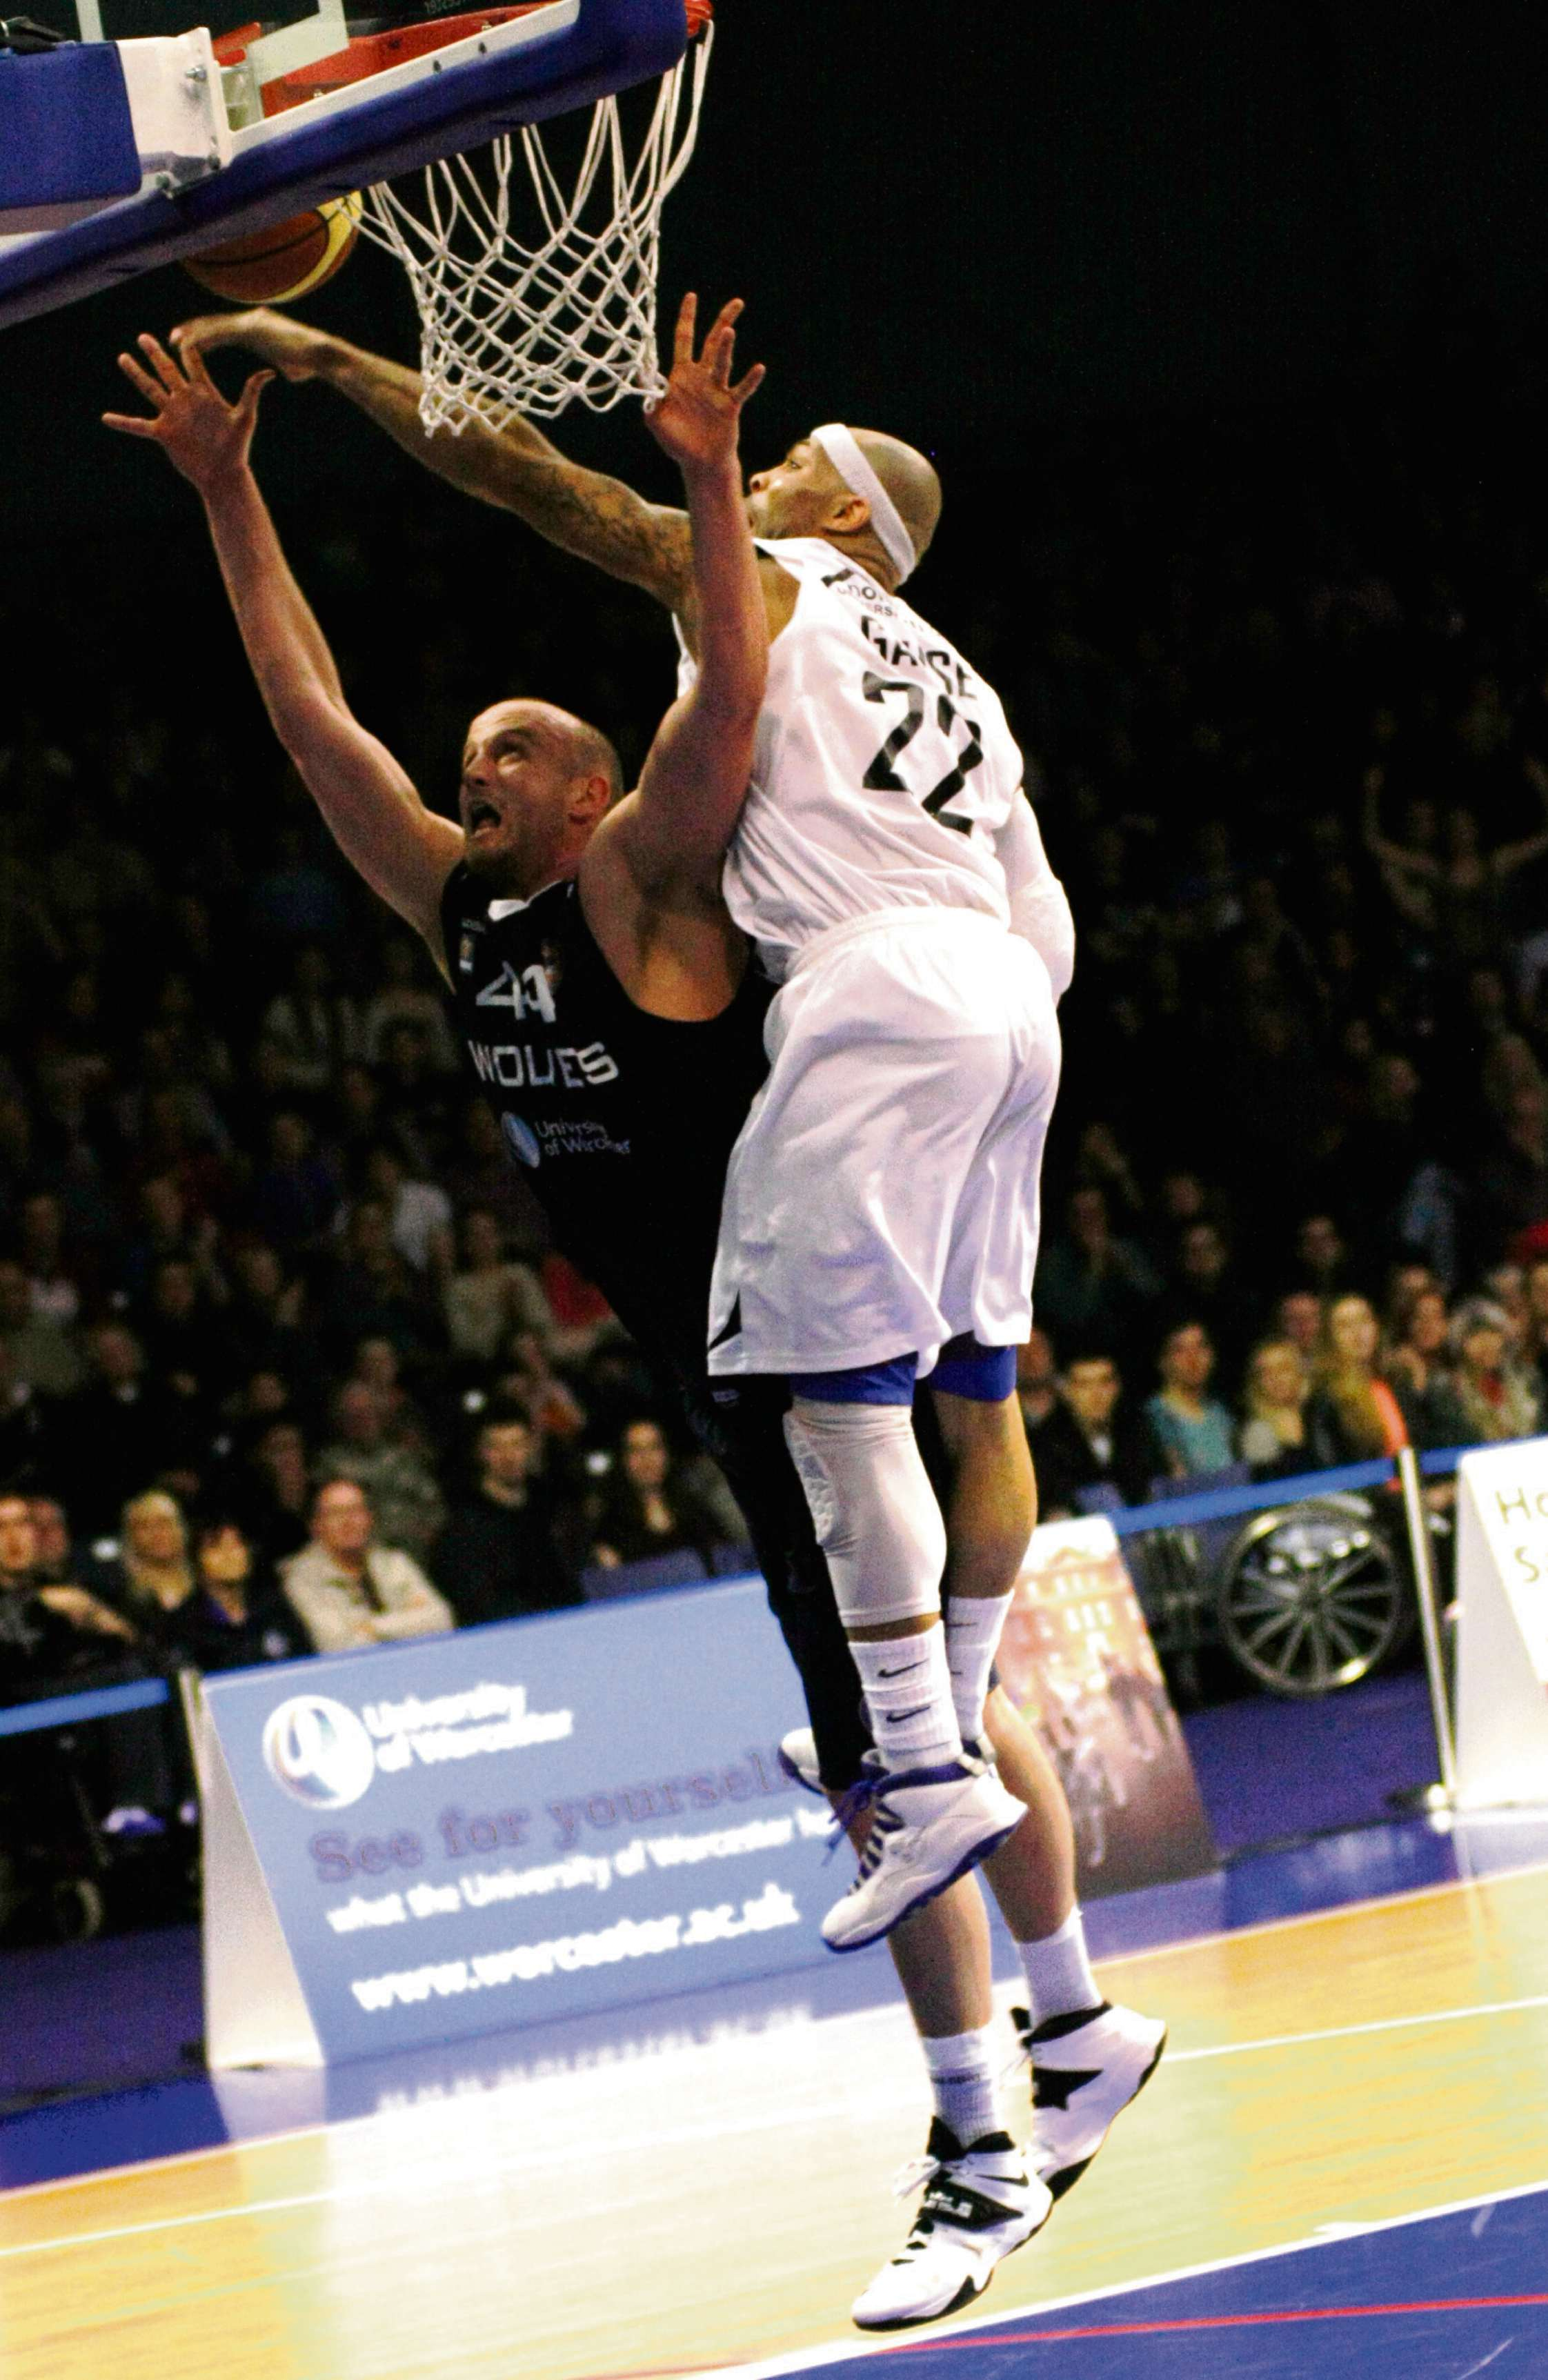 WILL CREEKMORE: One of Worcester's better performers in last Friday's defeat to Newcastle Eagles.